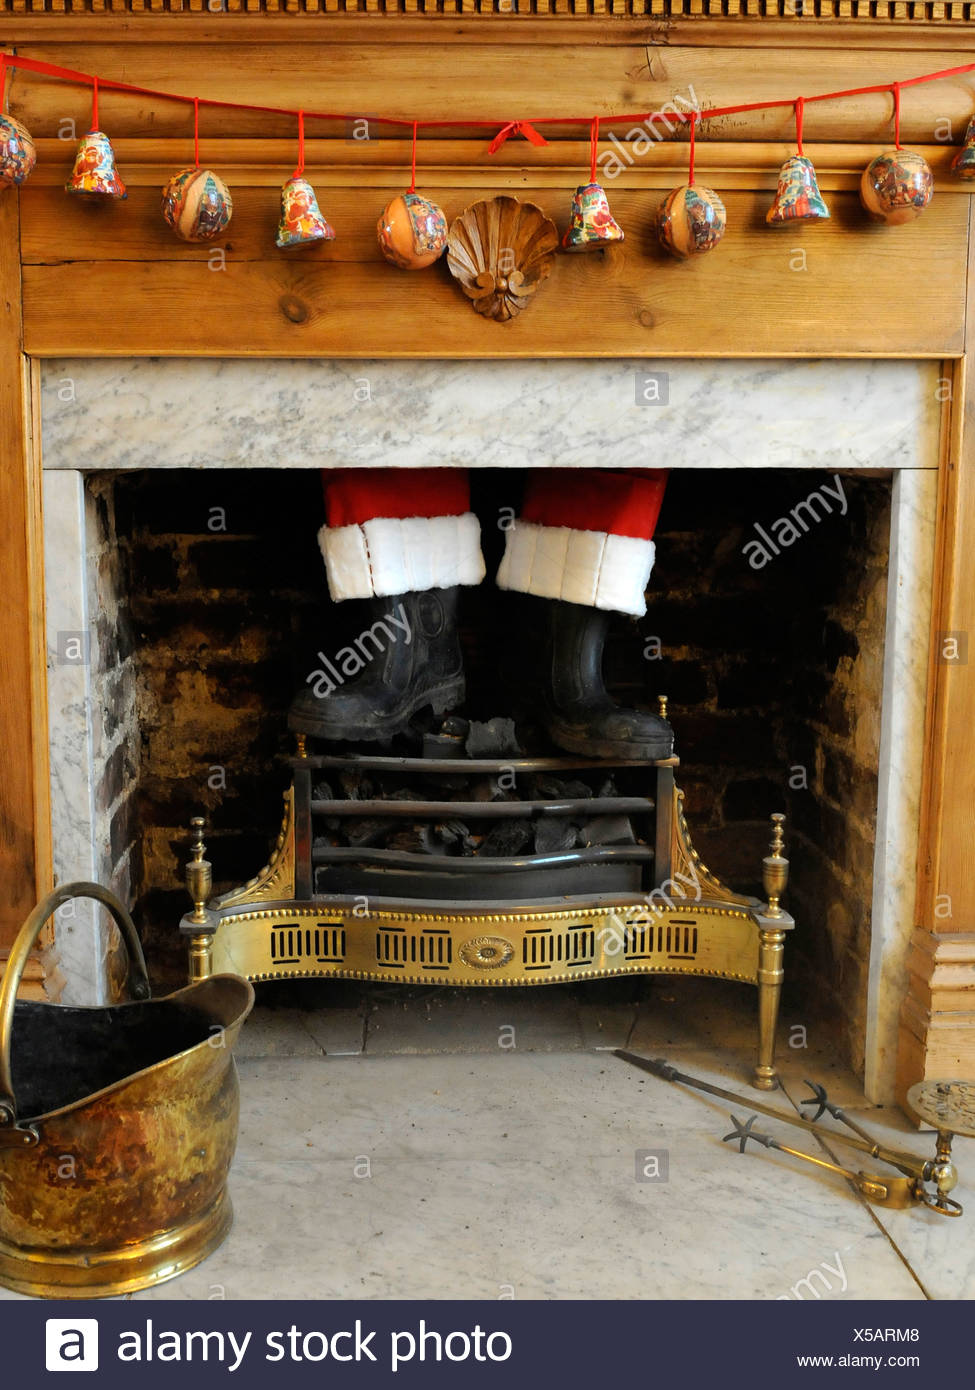 Father Christmas stuck in a chimney. - Stock Image